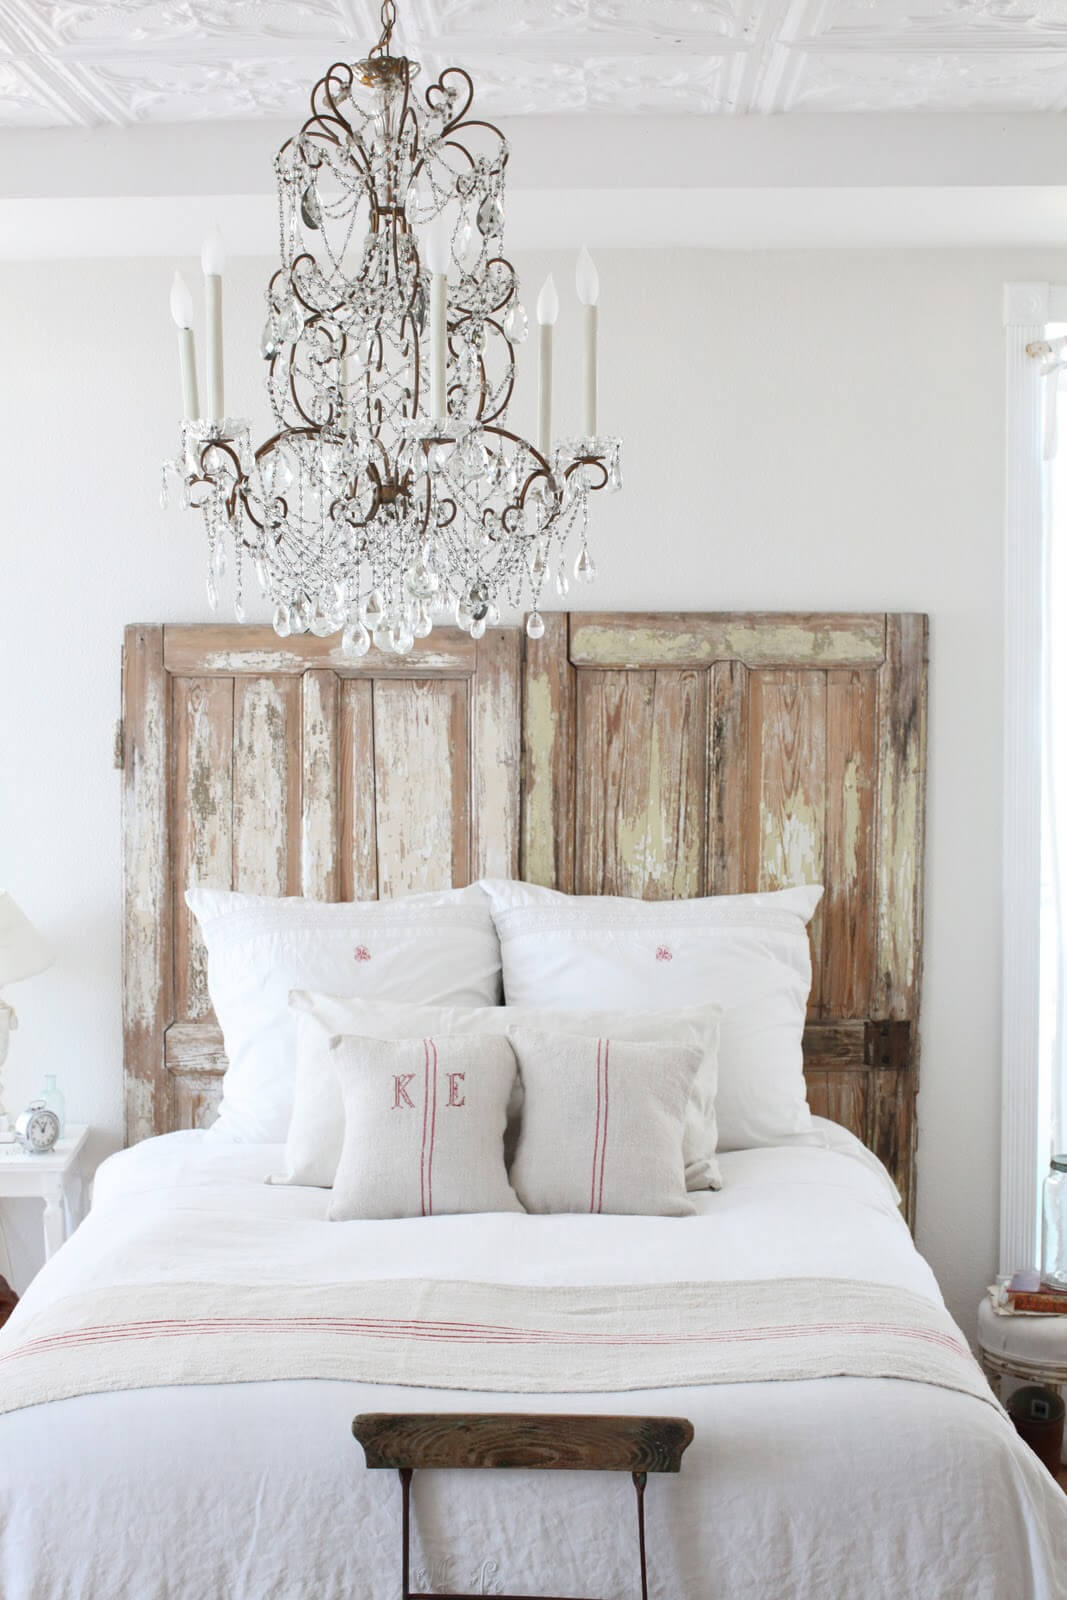 Clean, White Bedroom with Authentic Wood Backdrop